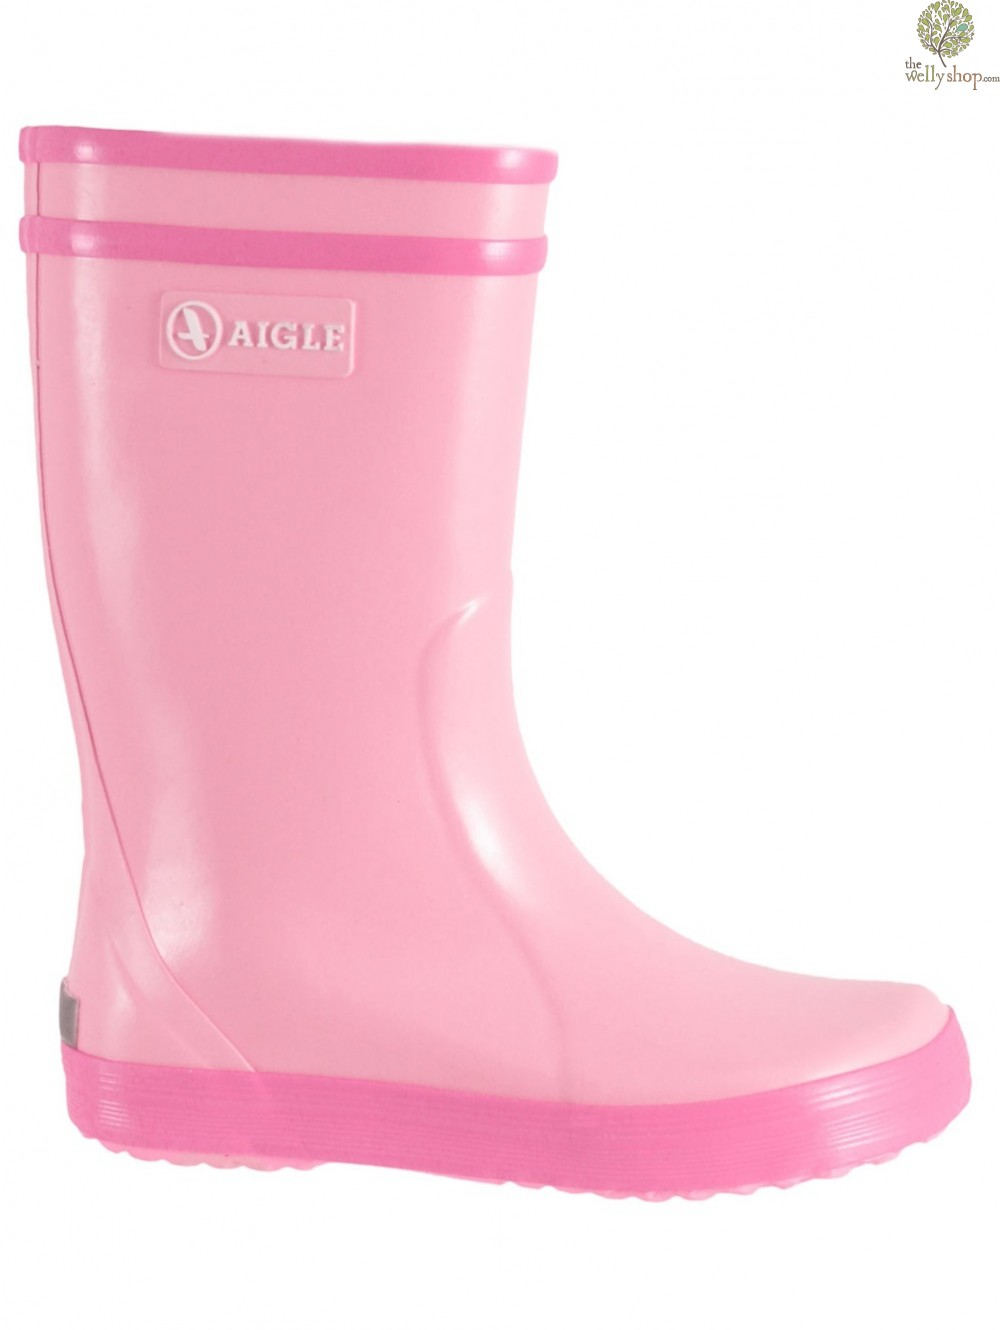 dd39f9914 ... Aigle Lollypop Childrens Wellies - Pink. Aigle ...